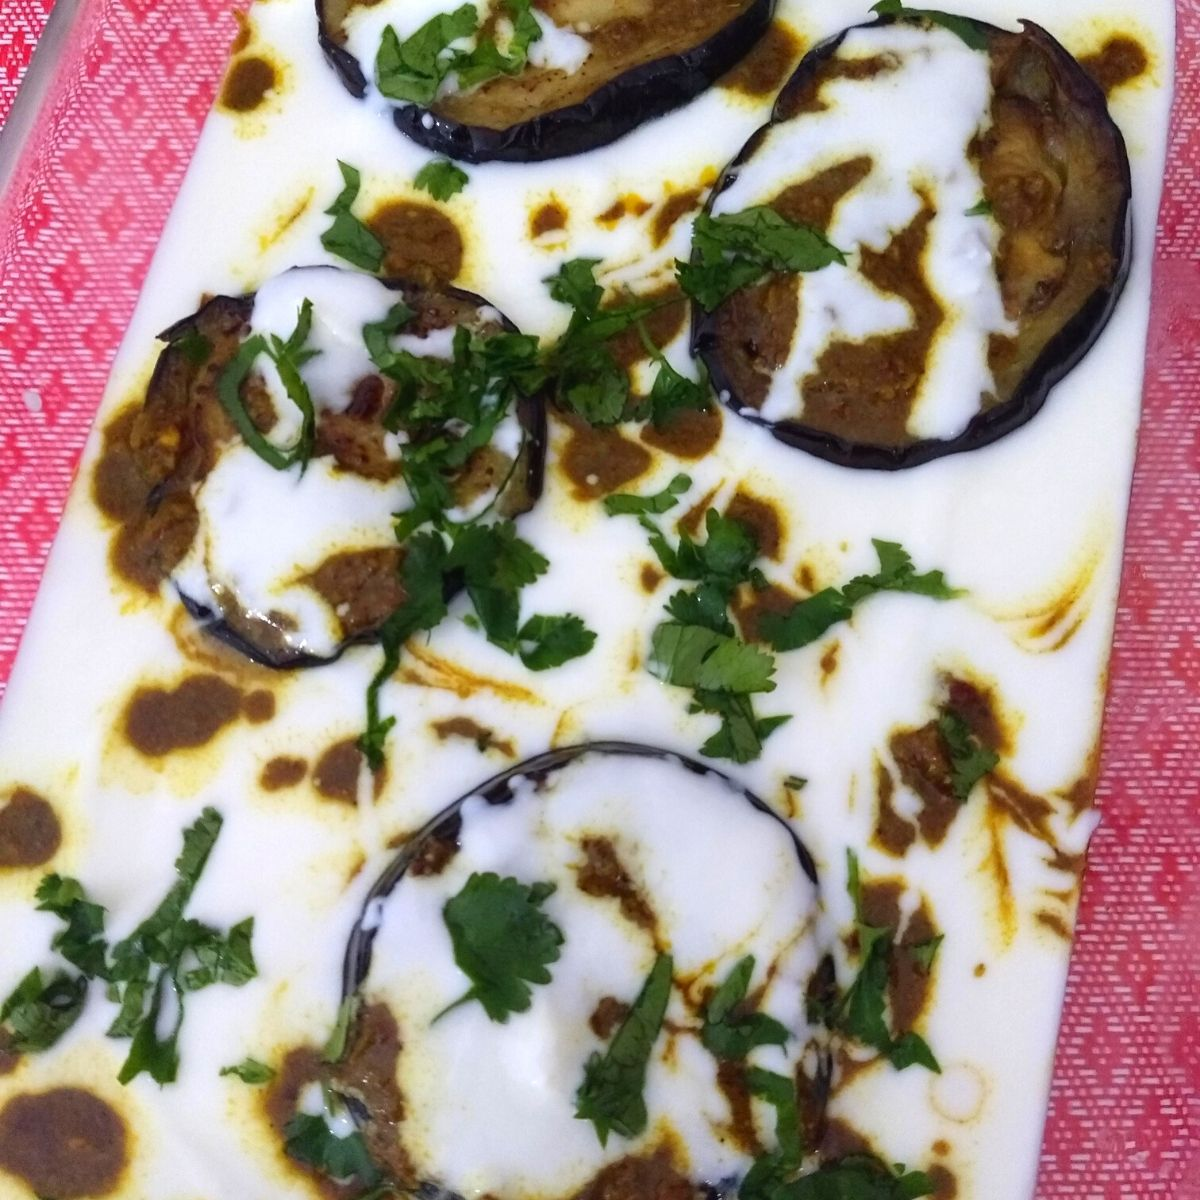 Dahi wale Baingan is a yummy, tangy and and easy eggplant recipe made using a few spices available in your kitchen and can be assembled in 20-30 minutes.